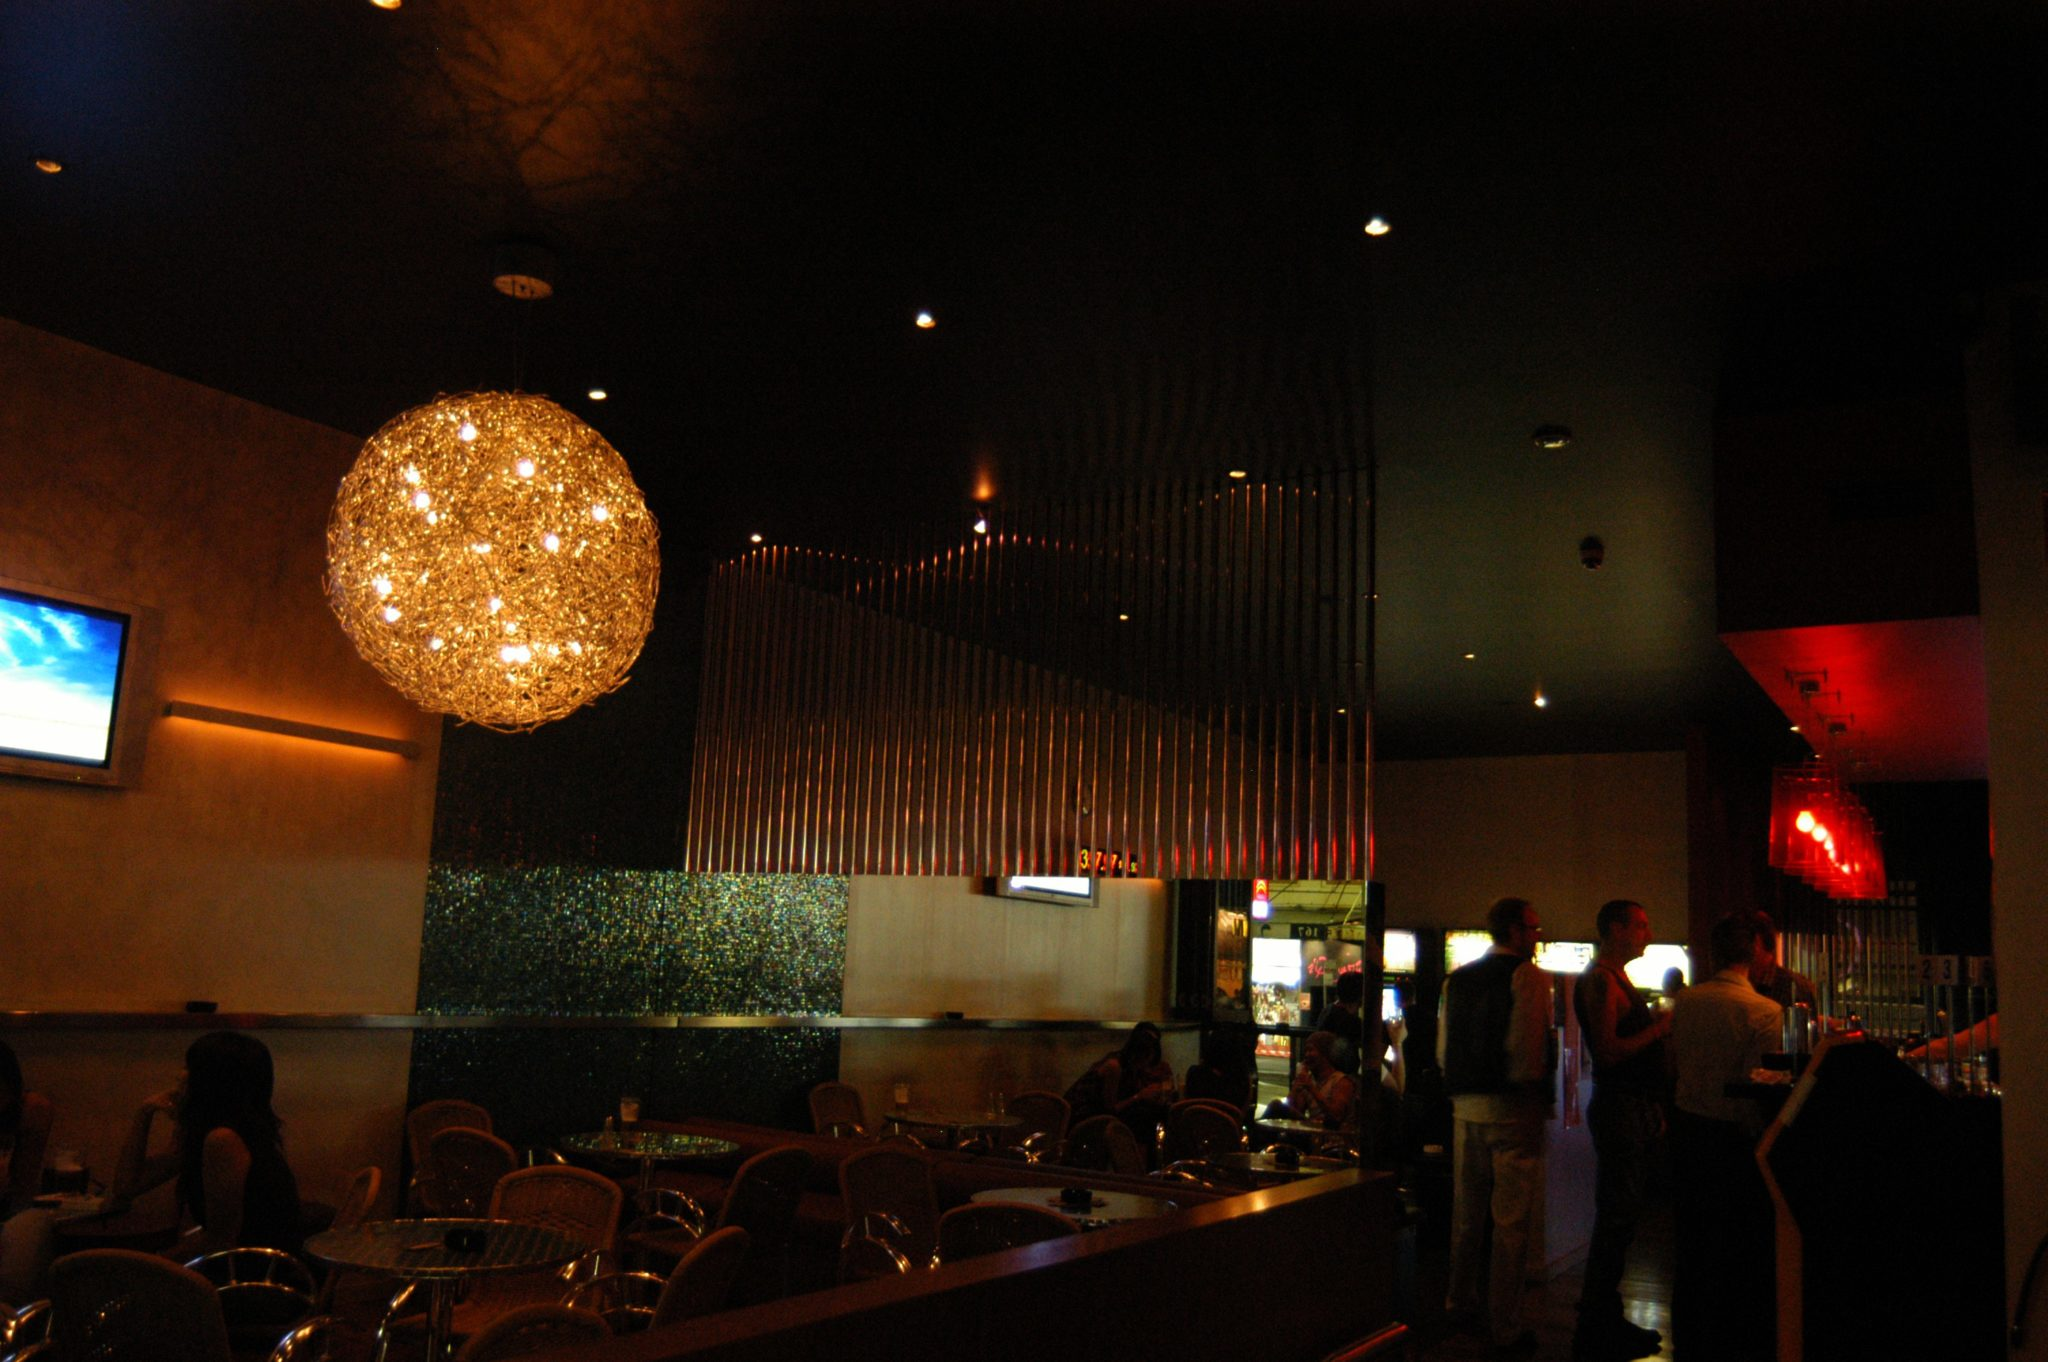 Lighting for restaurants and other commercial spaces by Limelight Australia